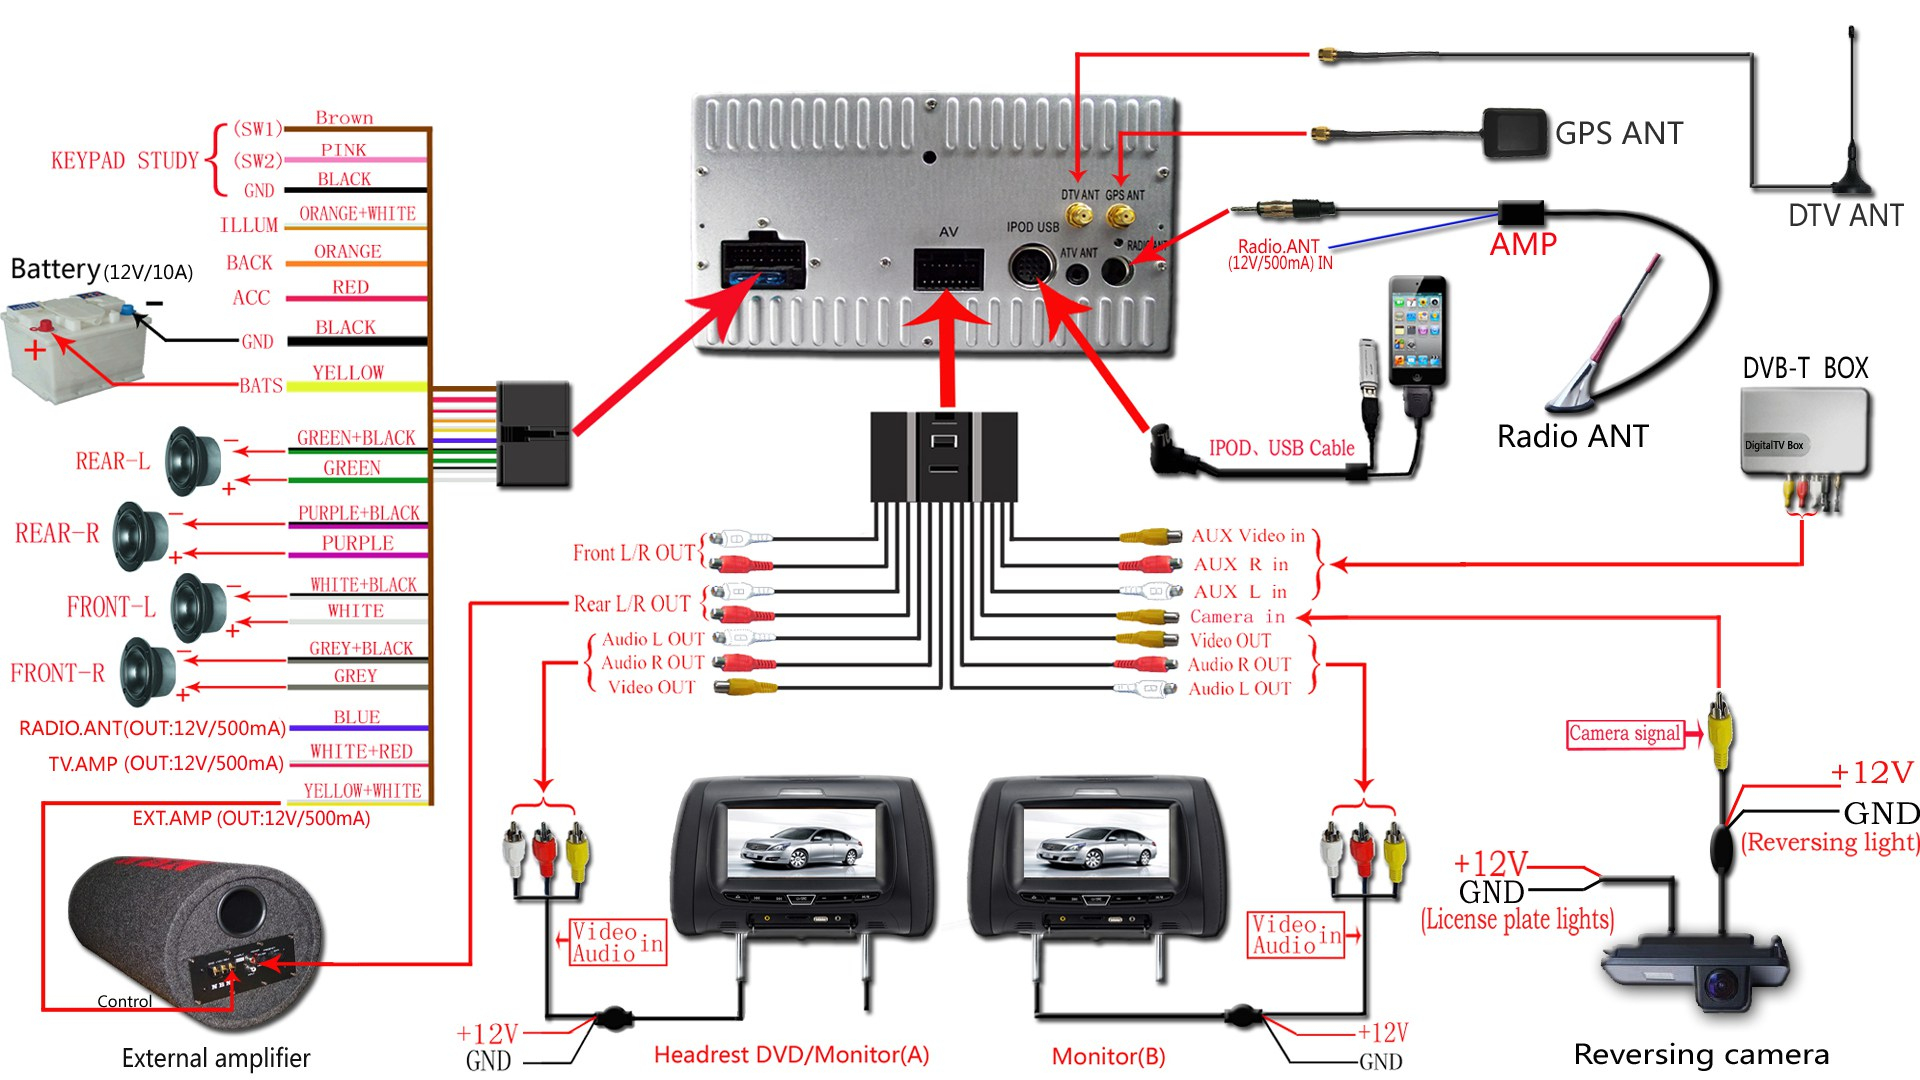 Car Stereo Diagram Sony Cd Player Wiring - Wiring Diagram Data - Car Stereo Wiring Diagram